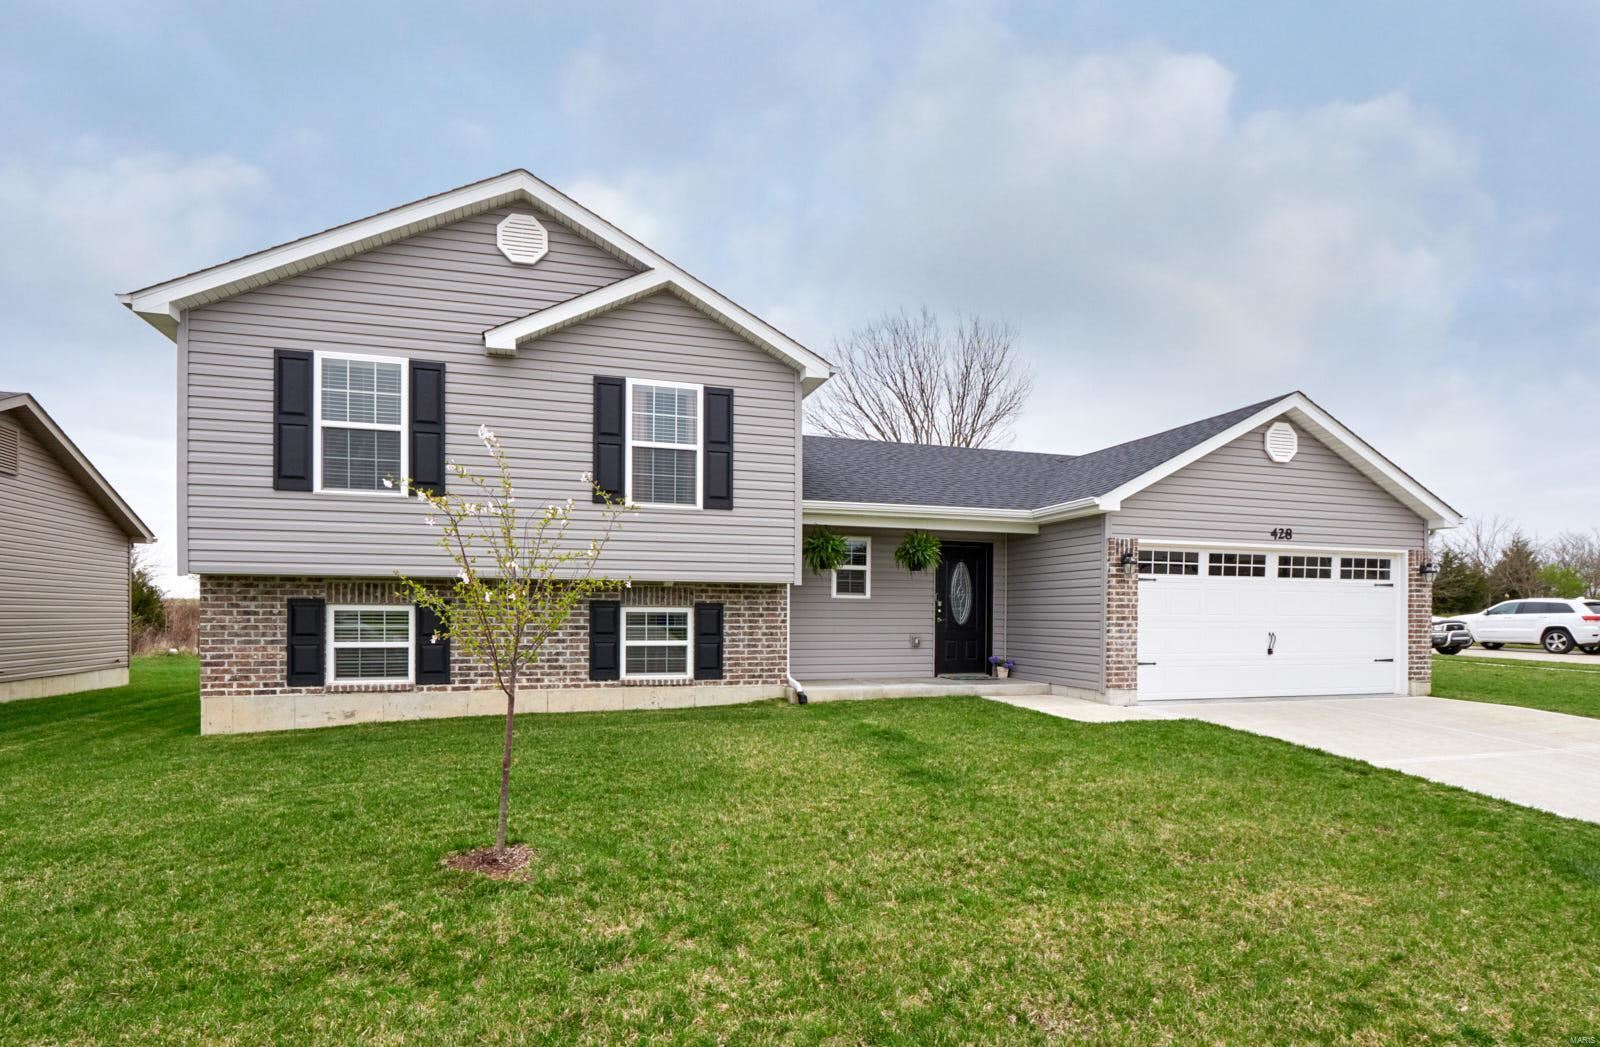 428 Honeysuckle Creek Drive, Wentzville, MO 63385 - MLS#: 20021178